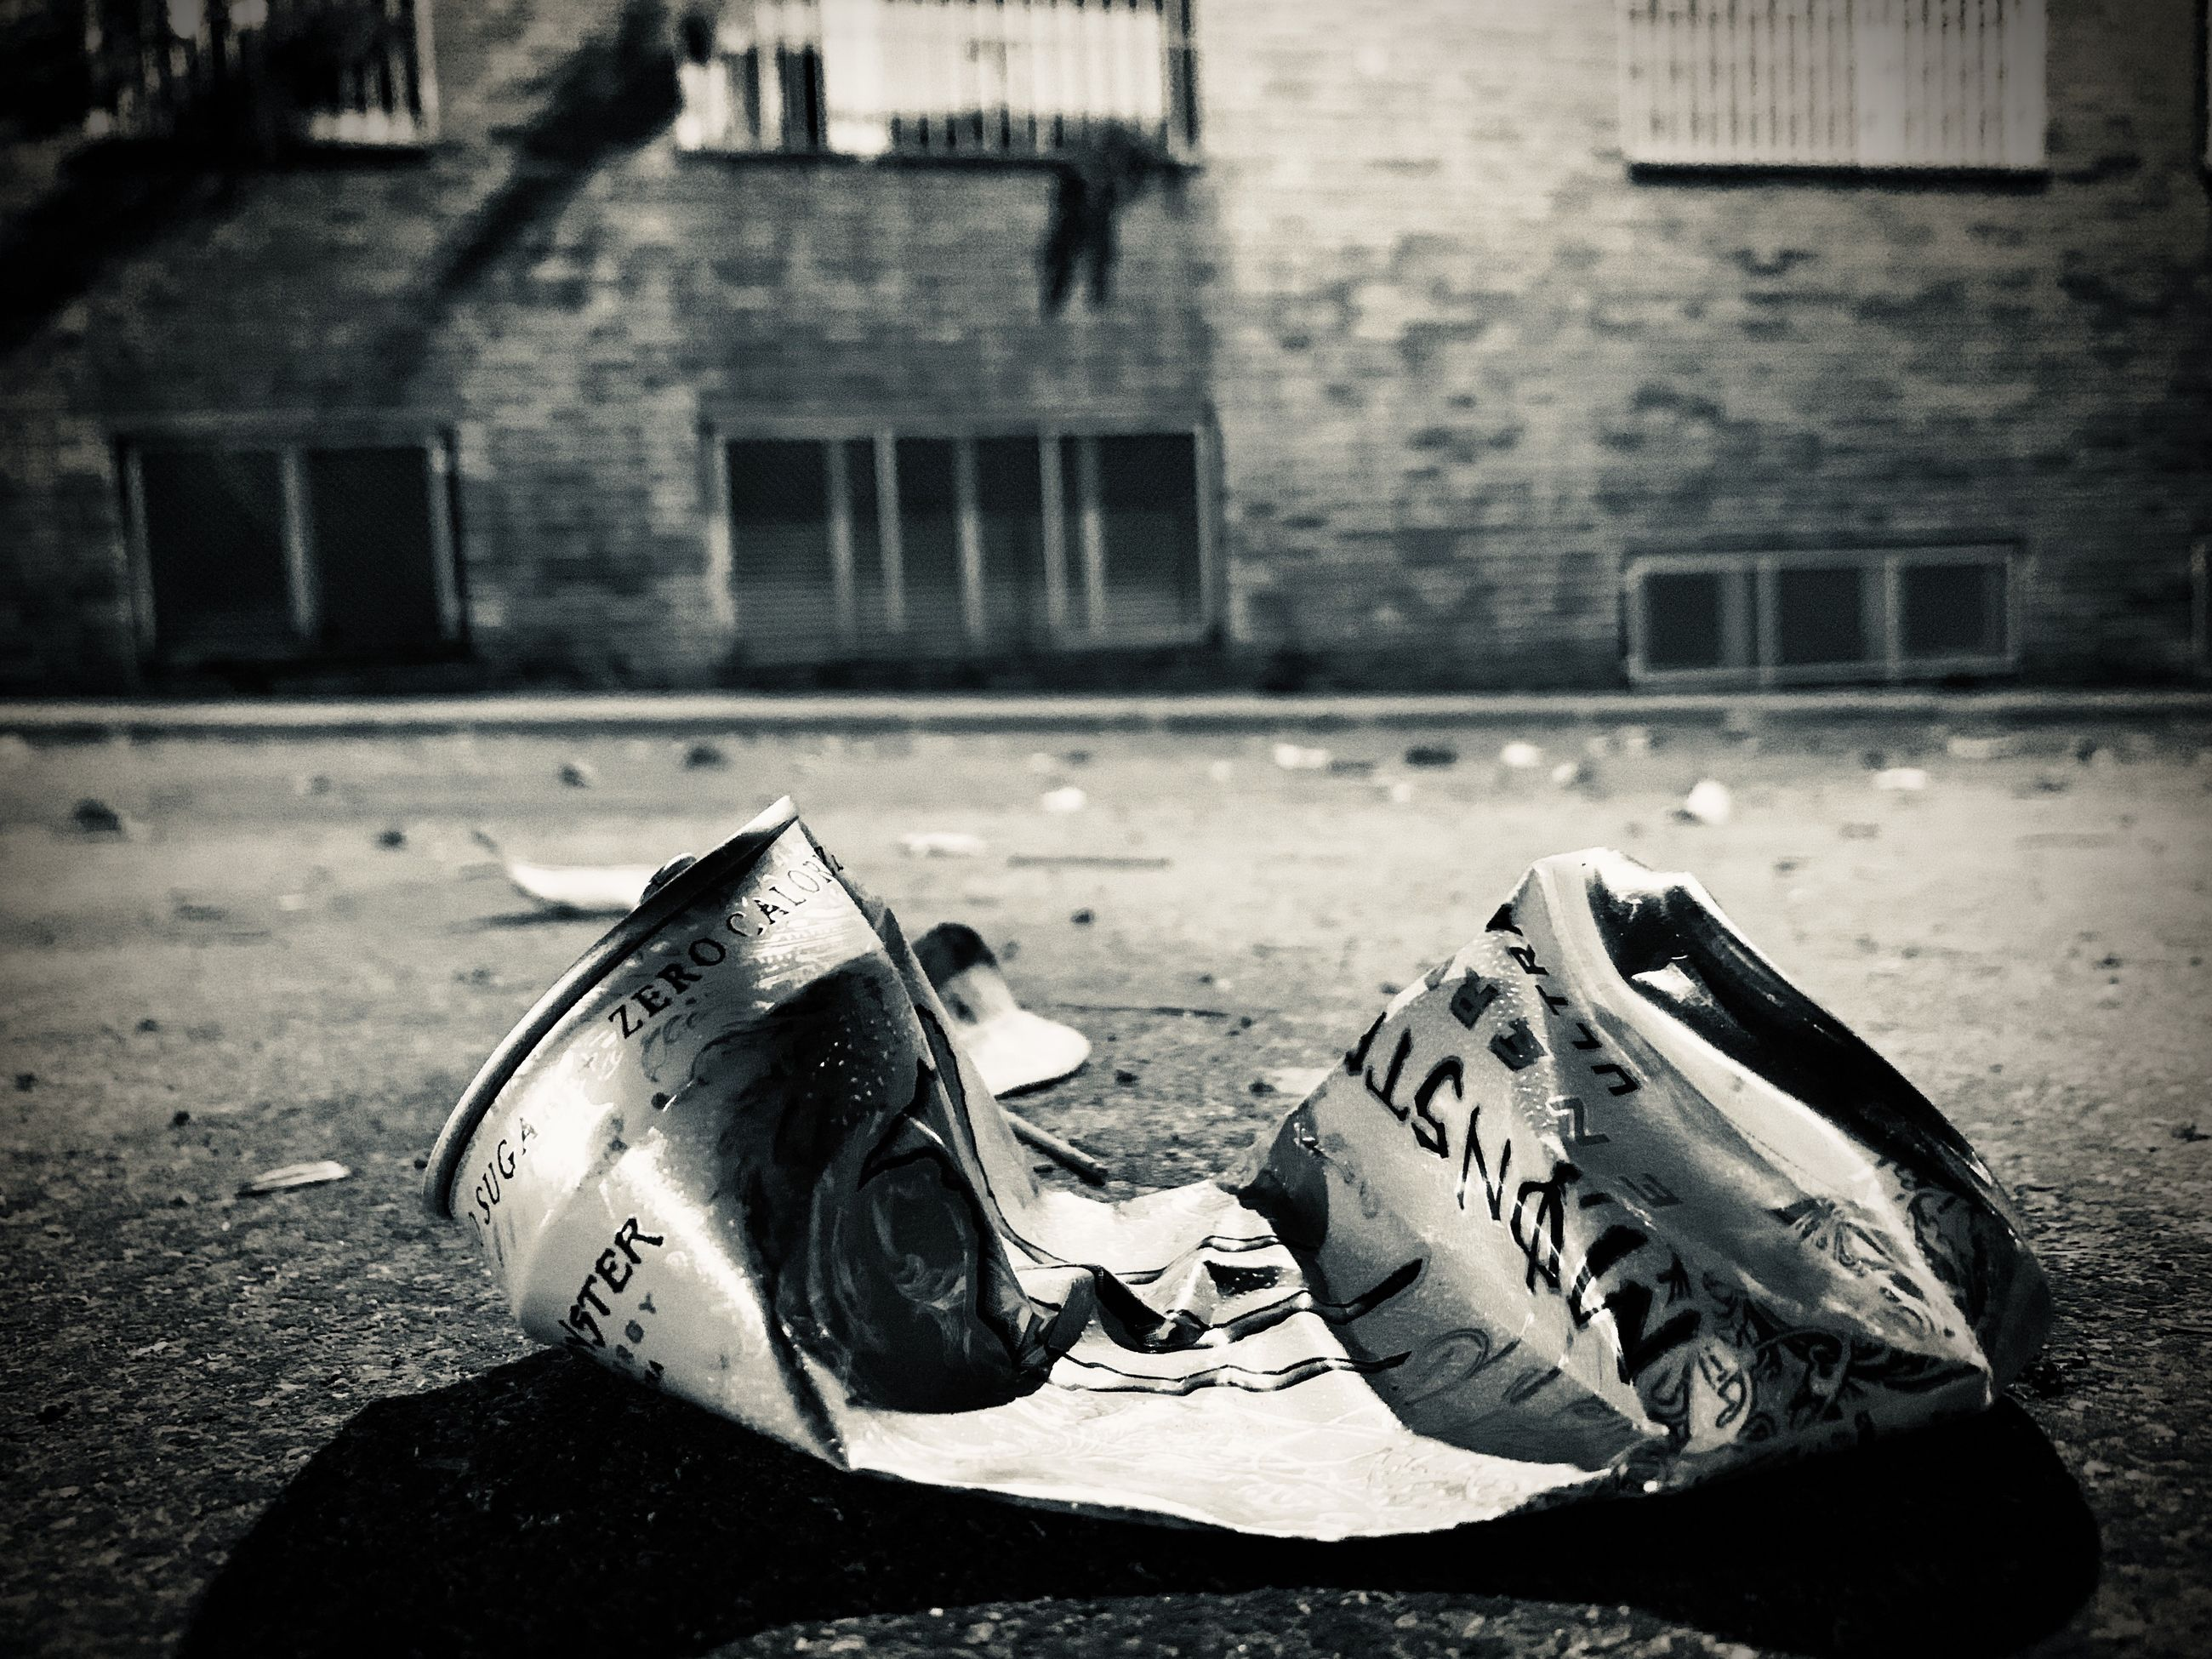 CLOSE-UP OF ABANDONED SHOES ON FOOTPATH AGAINST BUILDING